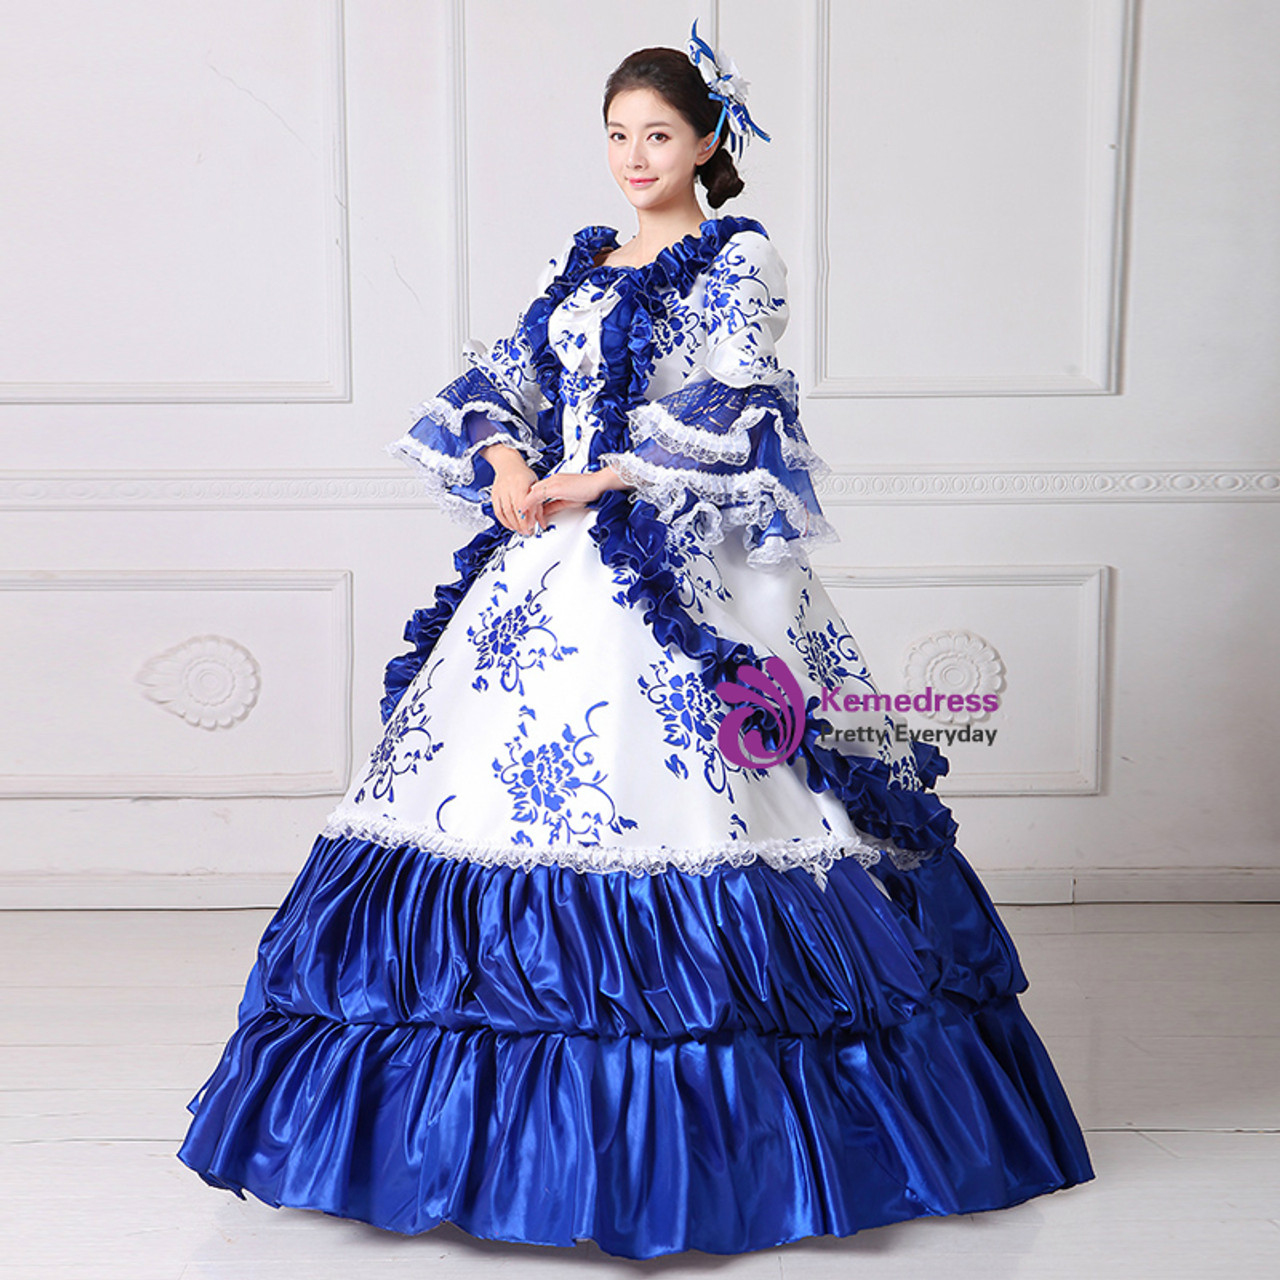 Blue White Ball Gown Puff Sleeve Print Drama Show Vintage Gown Dress